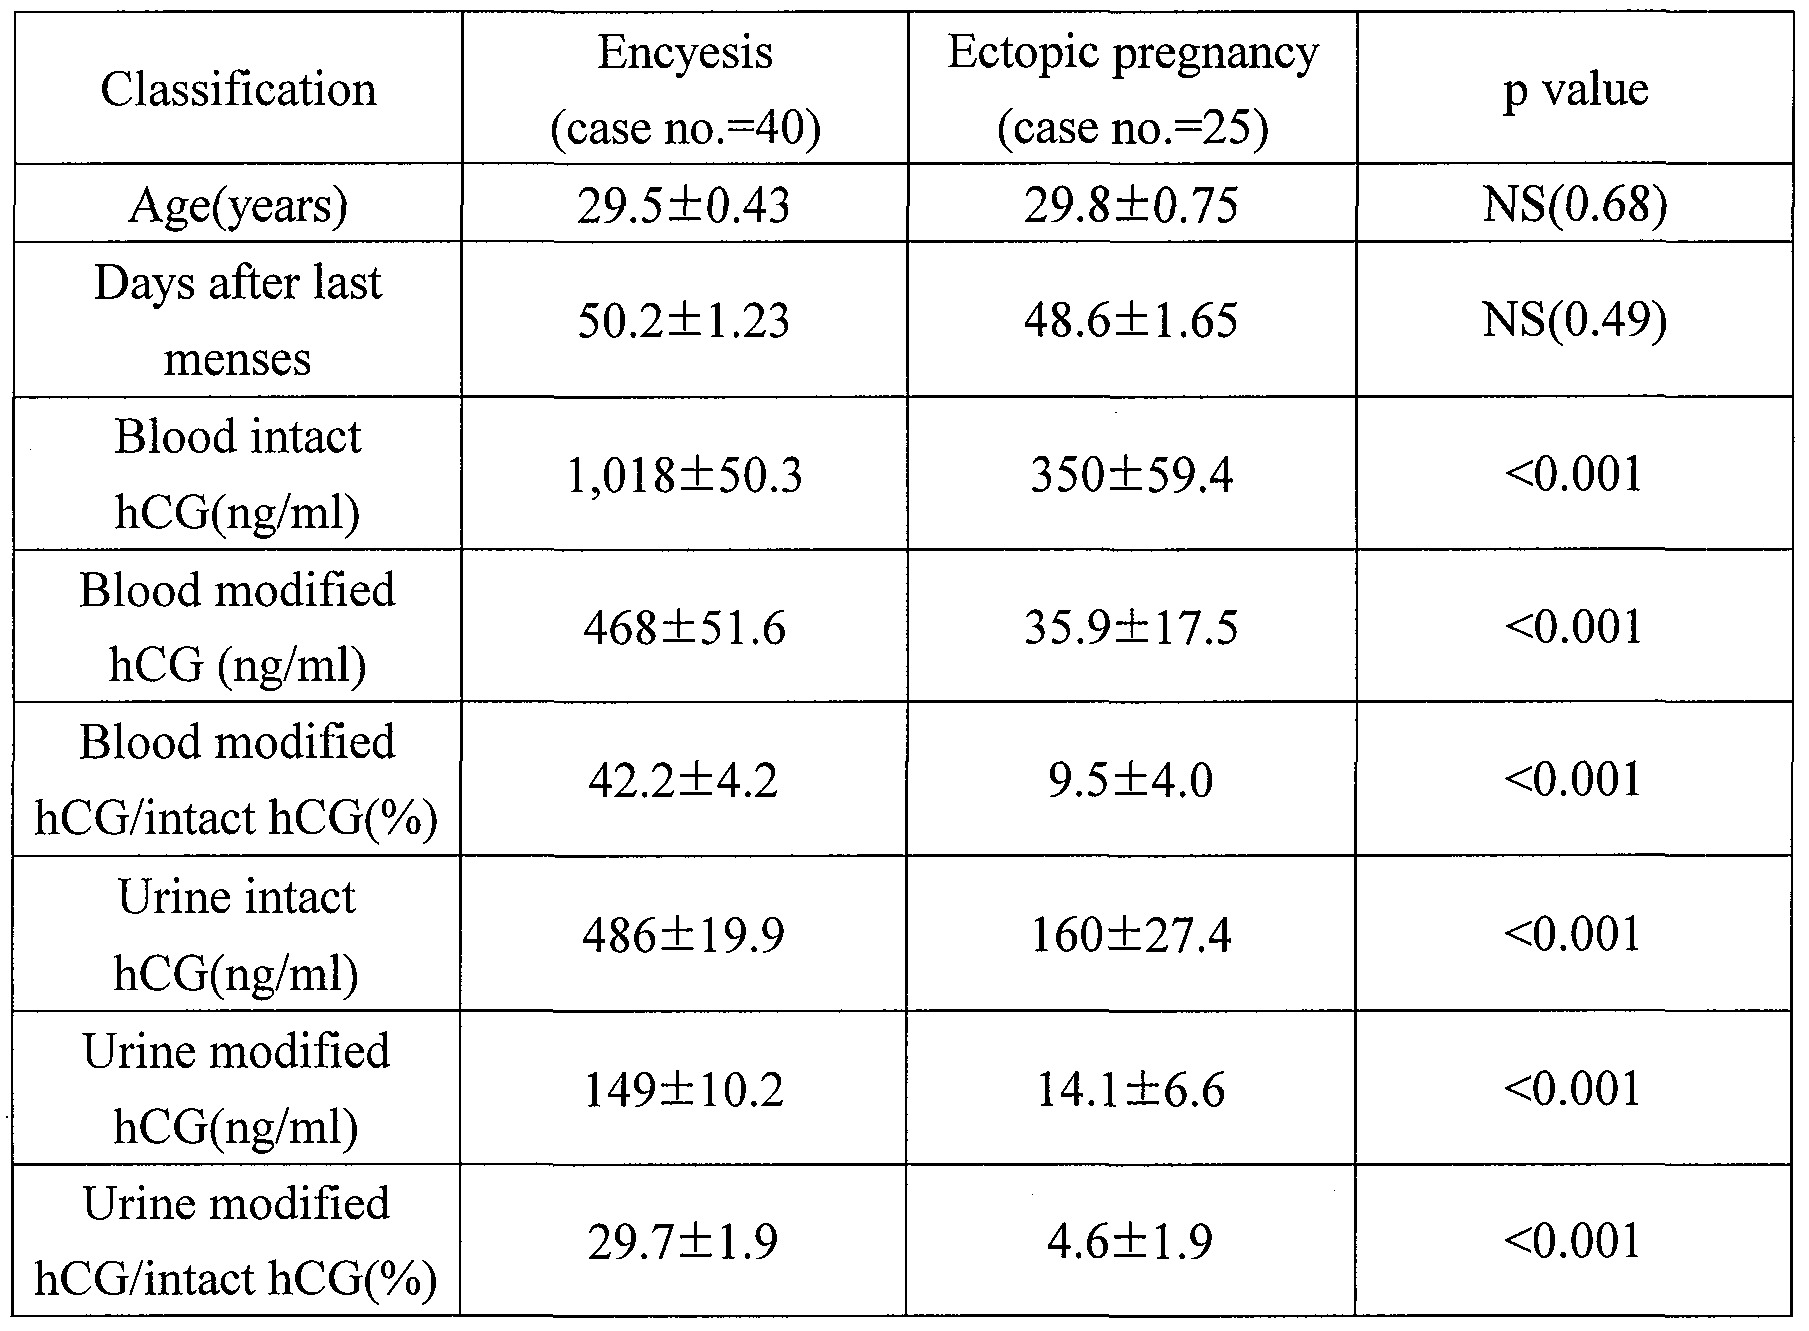 Ectopic pregnancy by hcg level